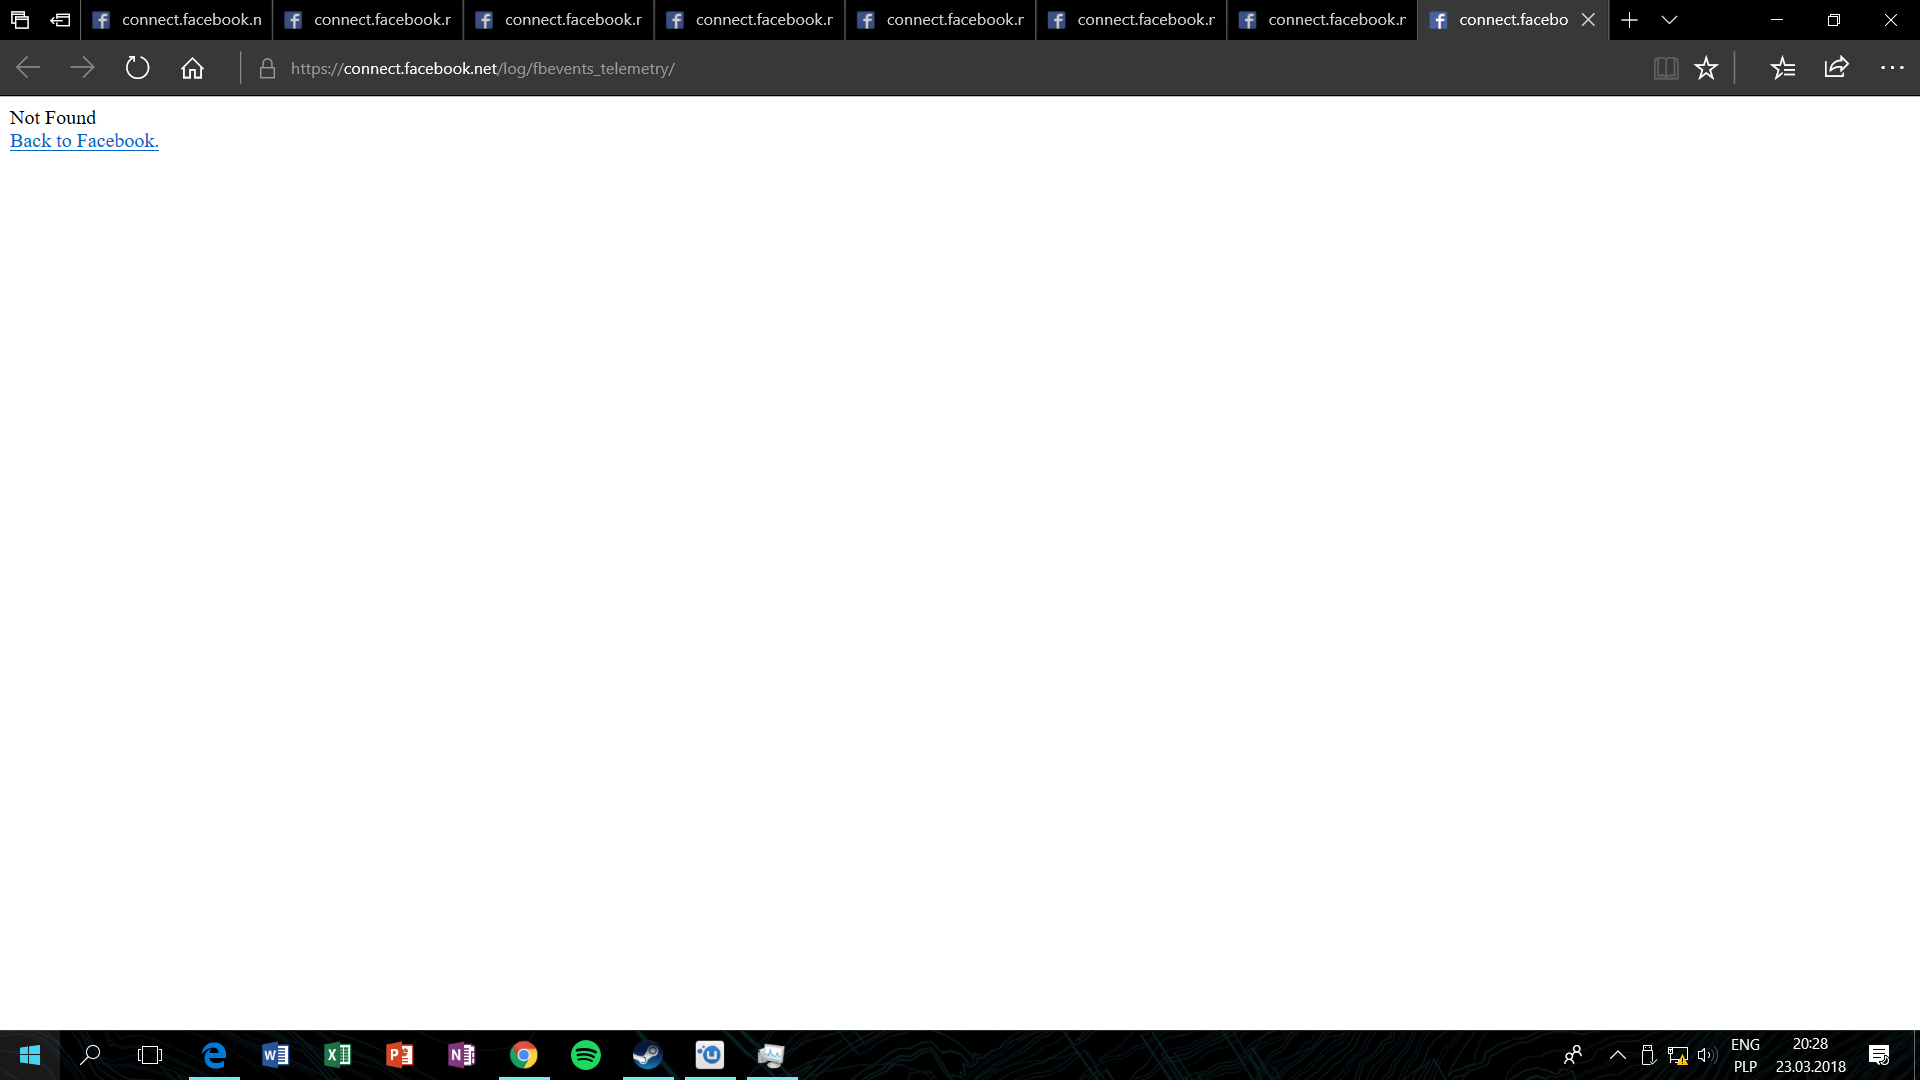 HELP! Edge keeps trying to open https://connect facebook net